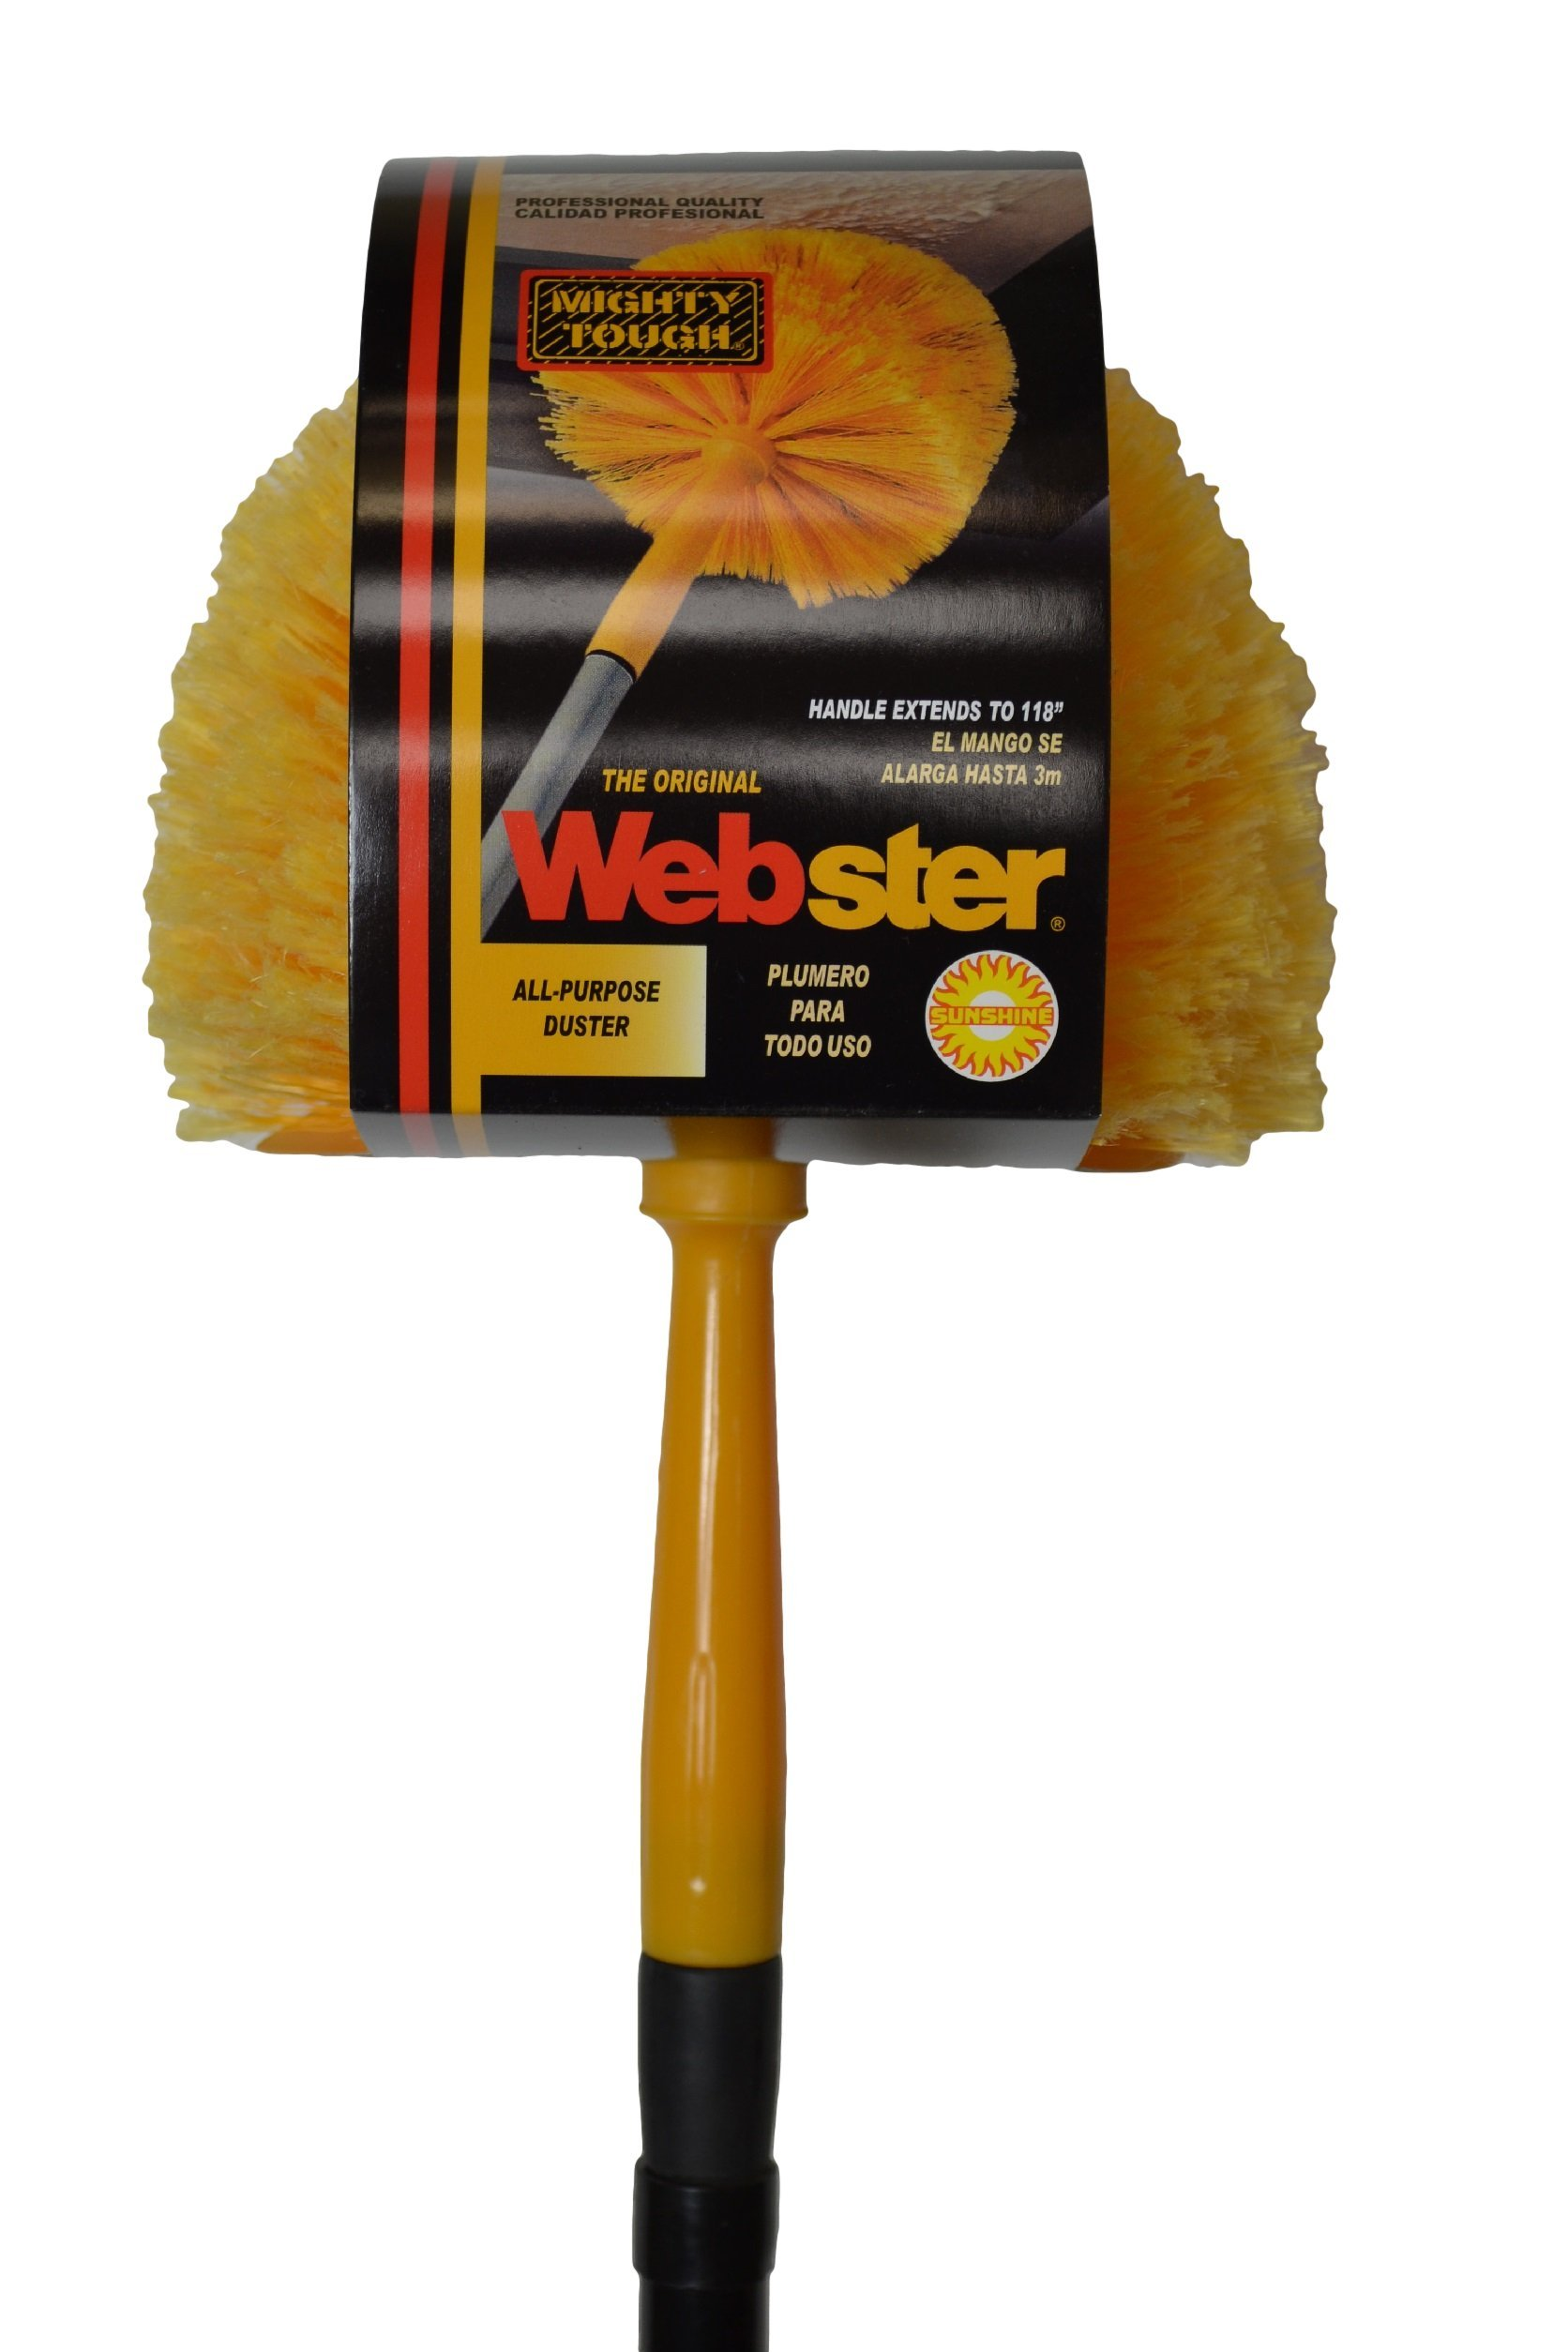 Starmax Mighty Tough Cob Web Duster with 118'' Extension Handle, Pack of 6, 195-50 by Starmax